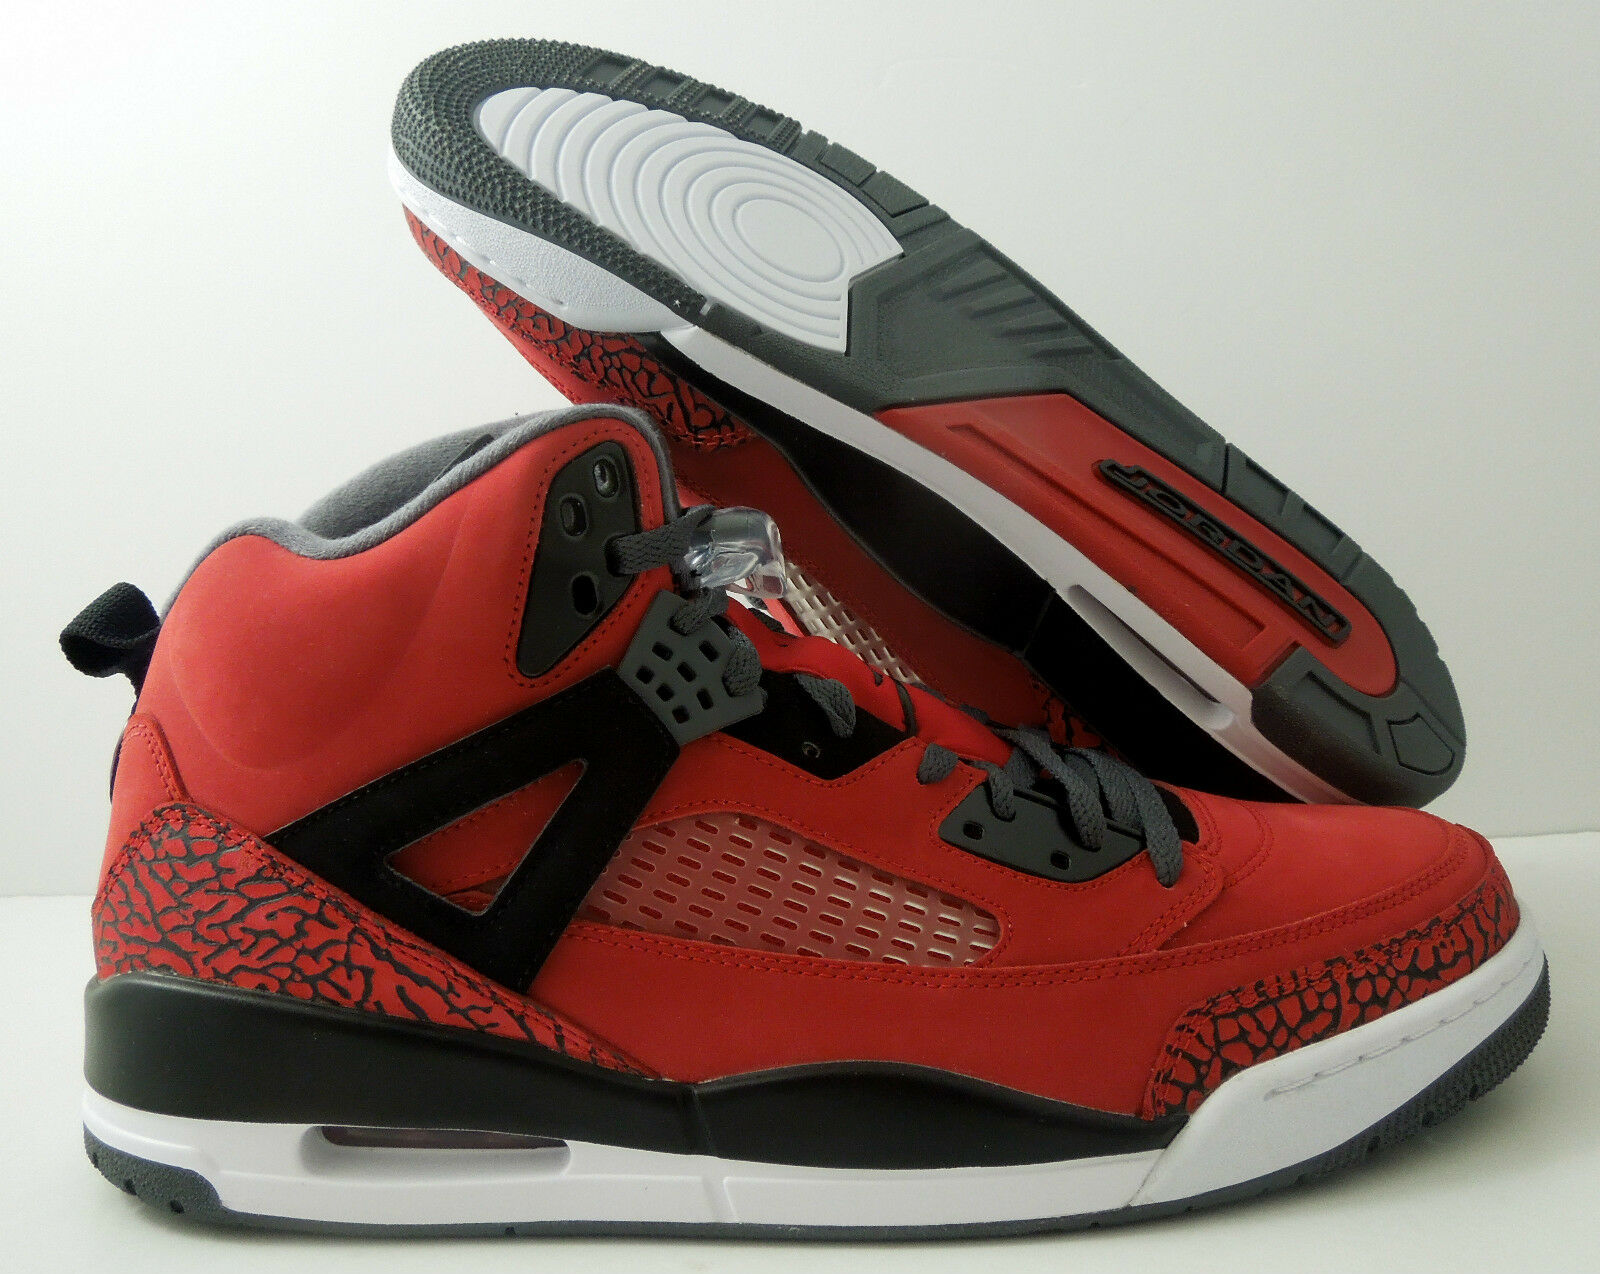 NIKE AIR JORDAN SPIZIKE GYM RED-BLACK-GREY-WHT